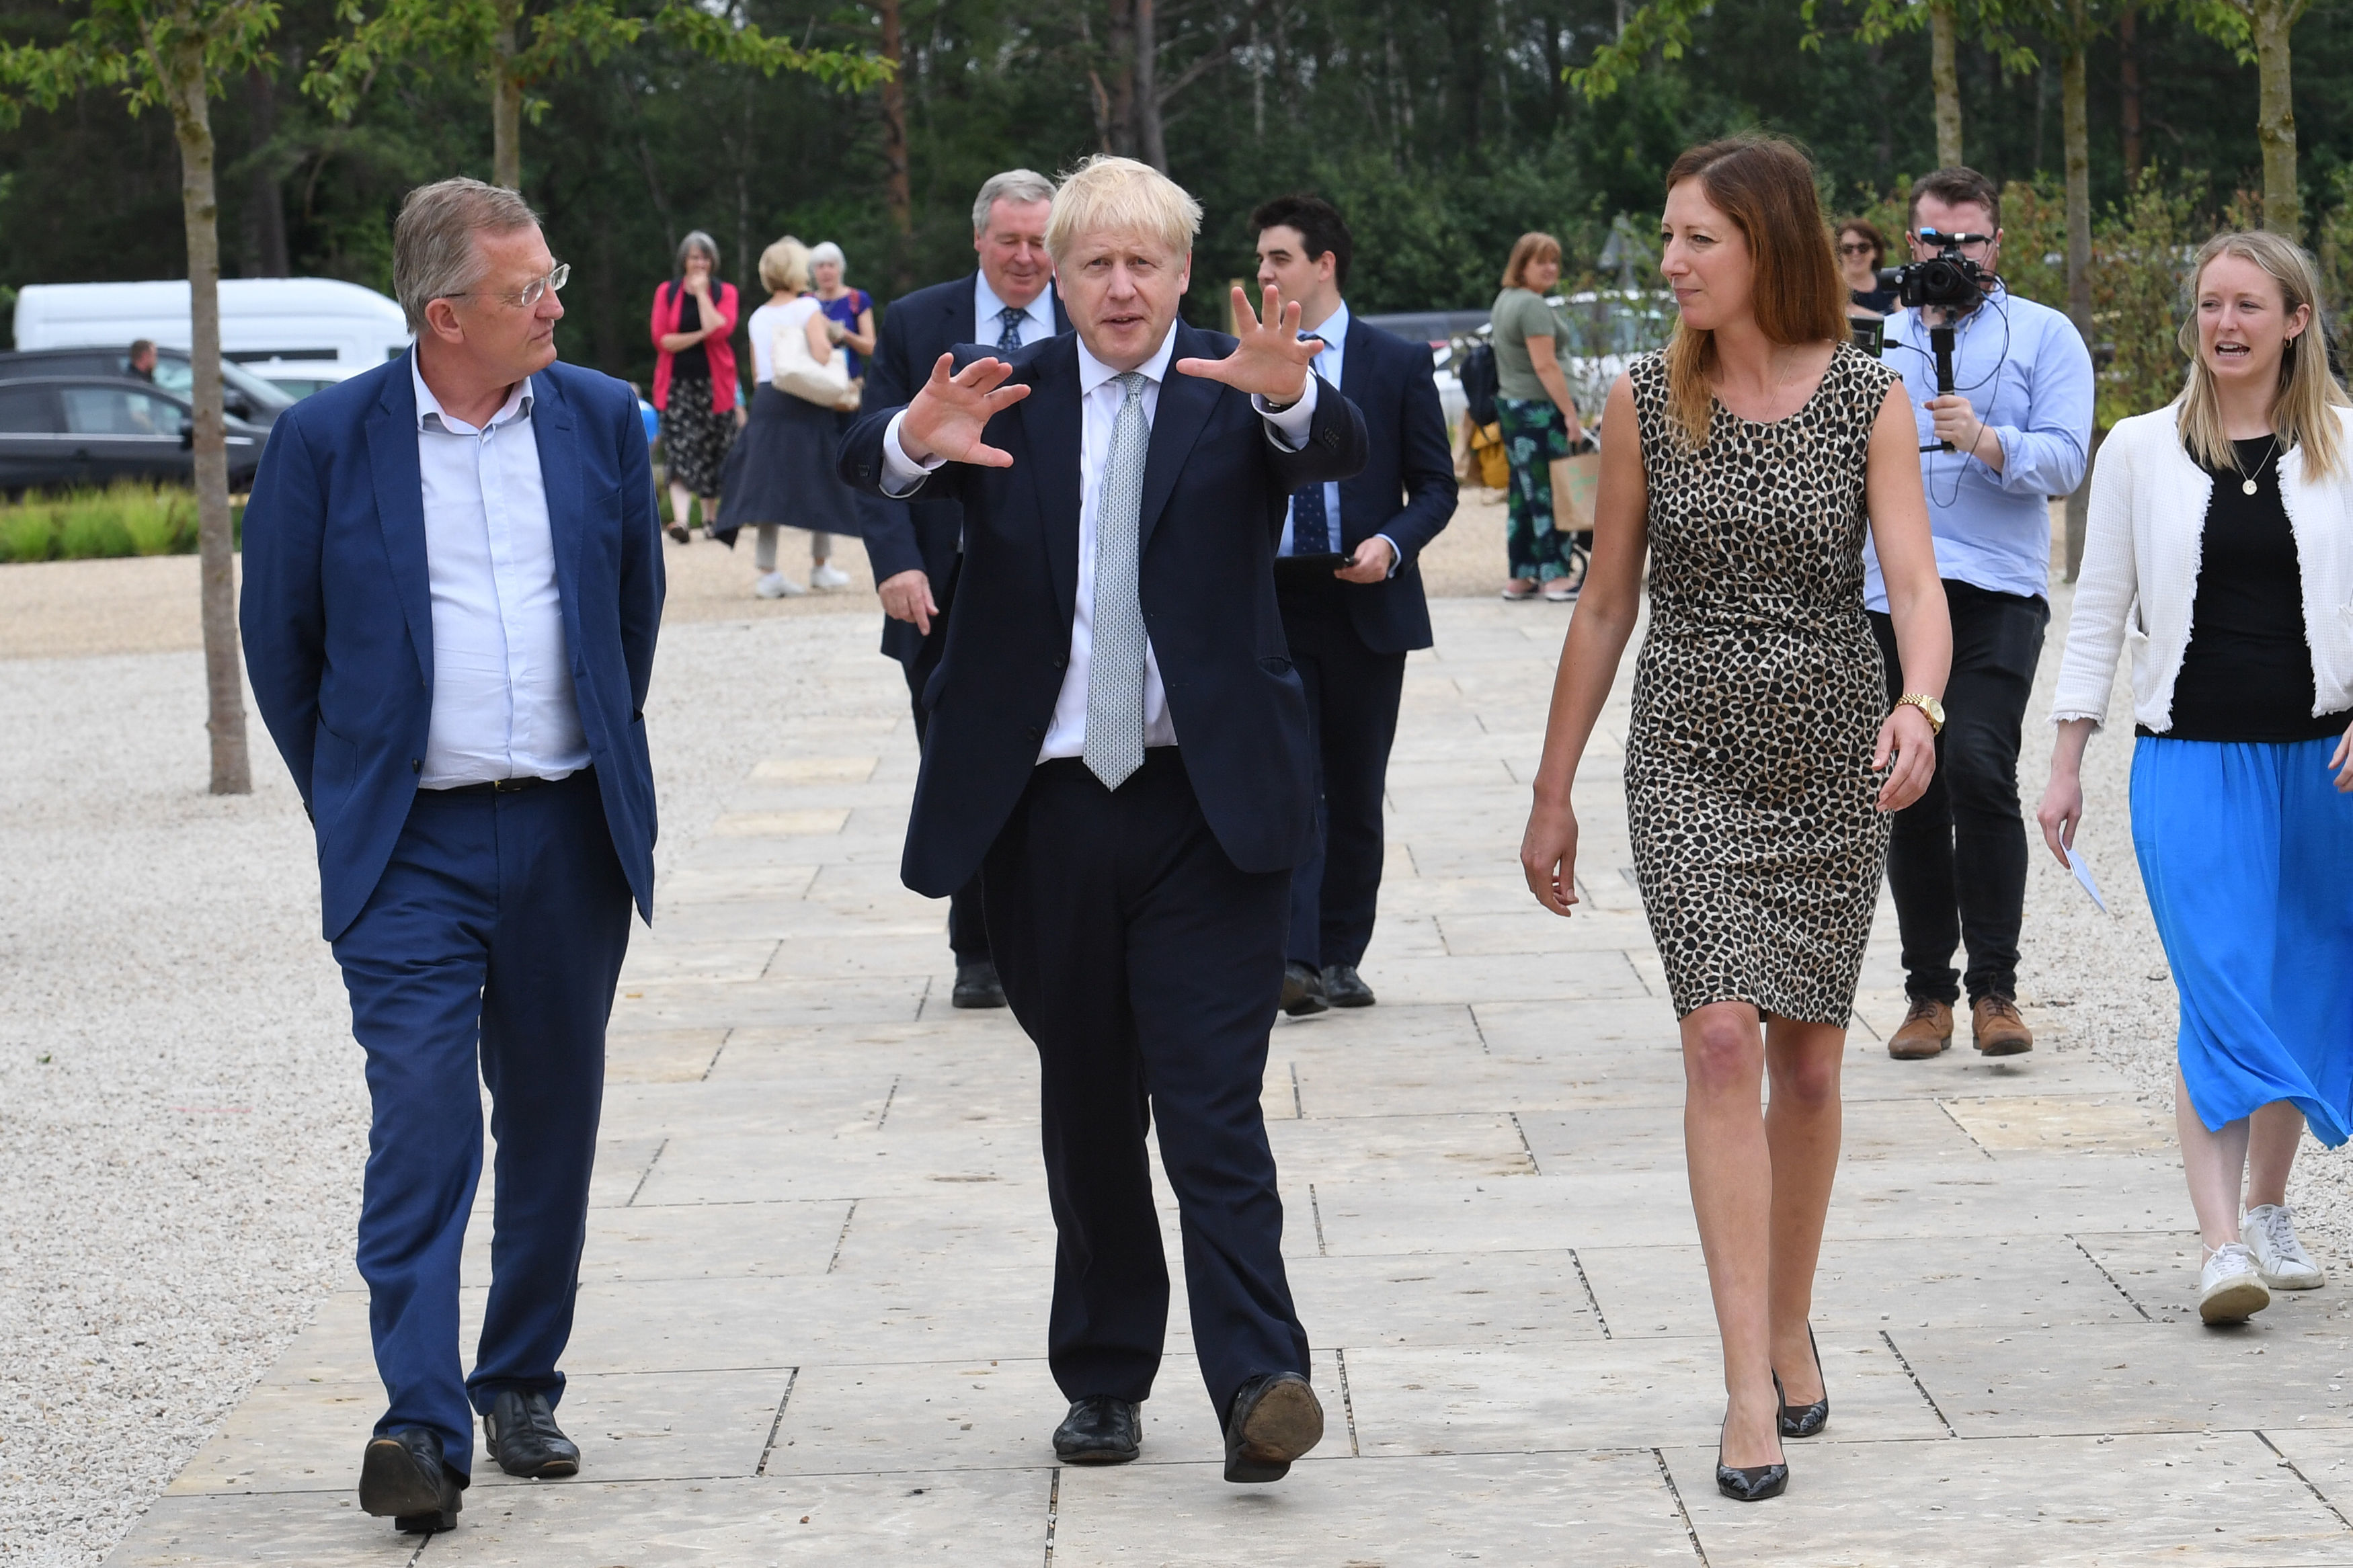 RETRANSMISSION adding name of Hayley Monckton. Conservative party leadership candidate Boris Johnson (centre) walks with David Alexander (left, Director of Estates at the RHS) and Hayley Monckton (front right, Director of Communications at the RHS) while touring the RHS (Royal Horticultural Society) garden at Wisley, in Surrey.